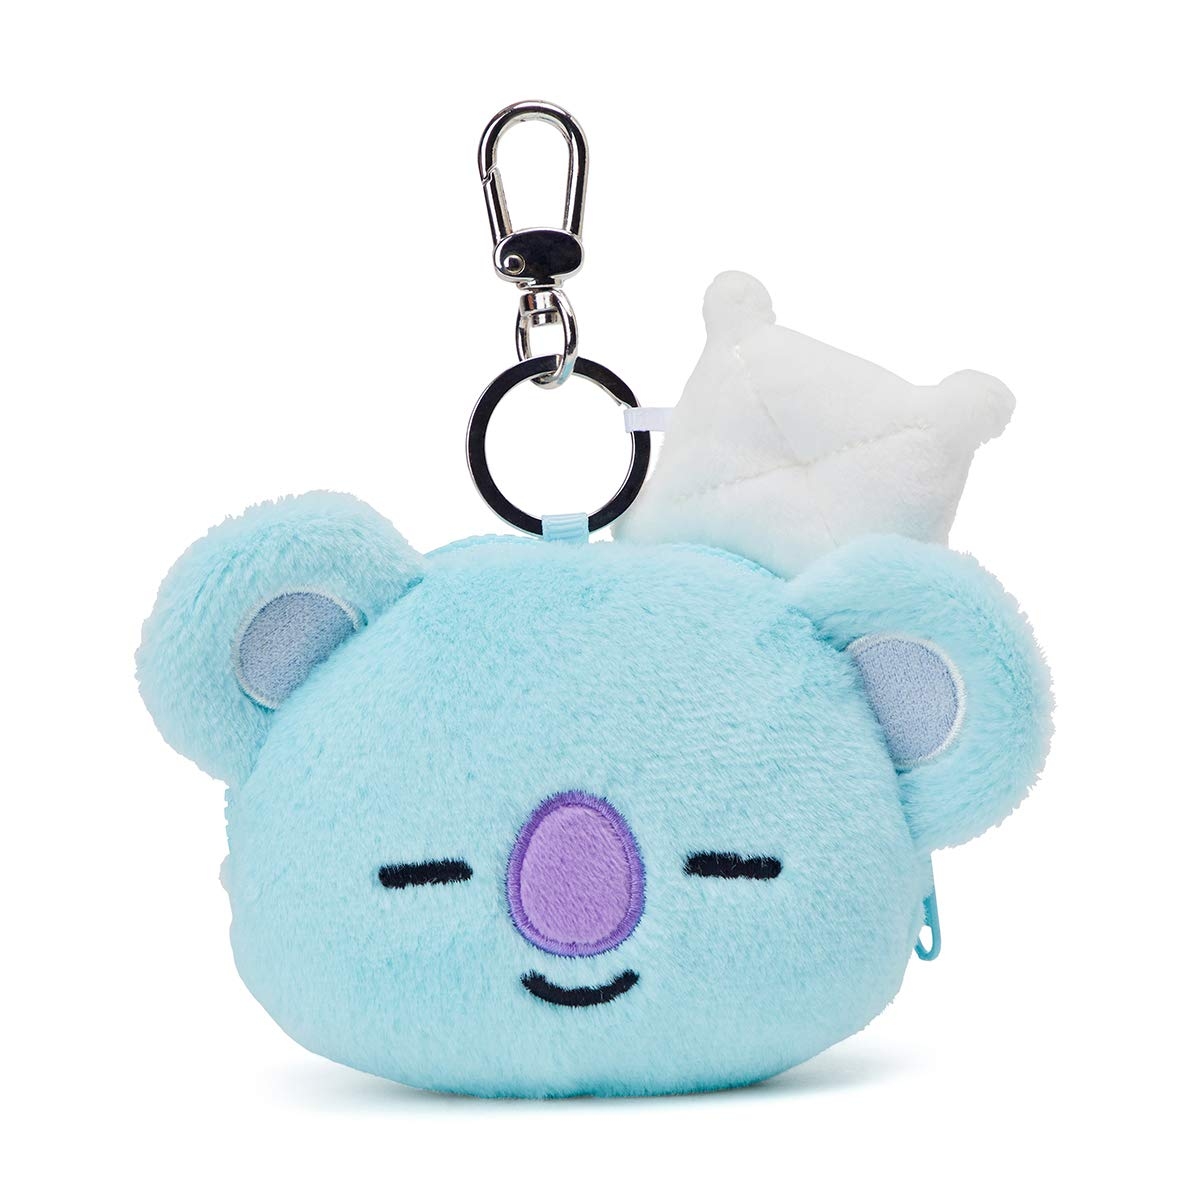 BT21 Official Merchandise by Line Friends - KOYA Character Keychain Coin Purse Bag Charm, Blue